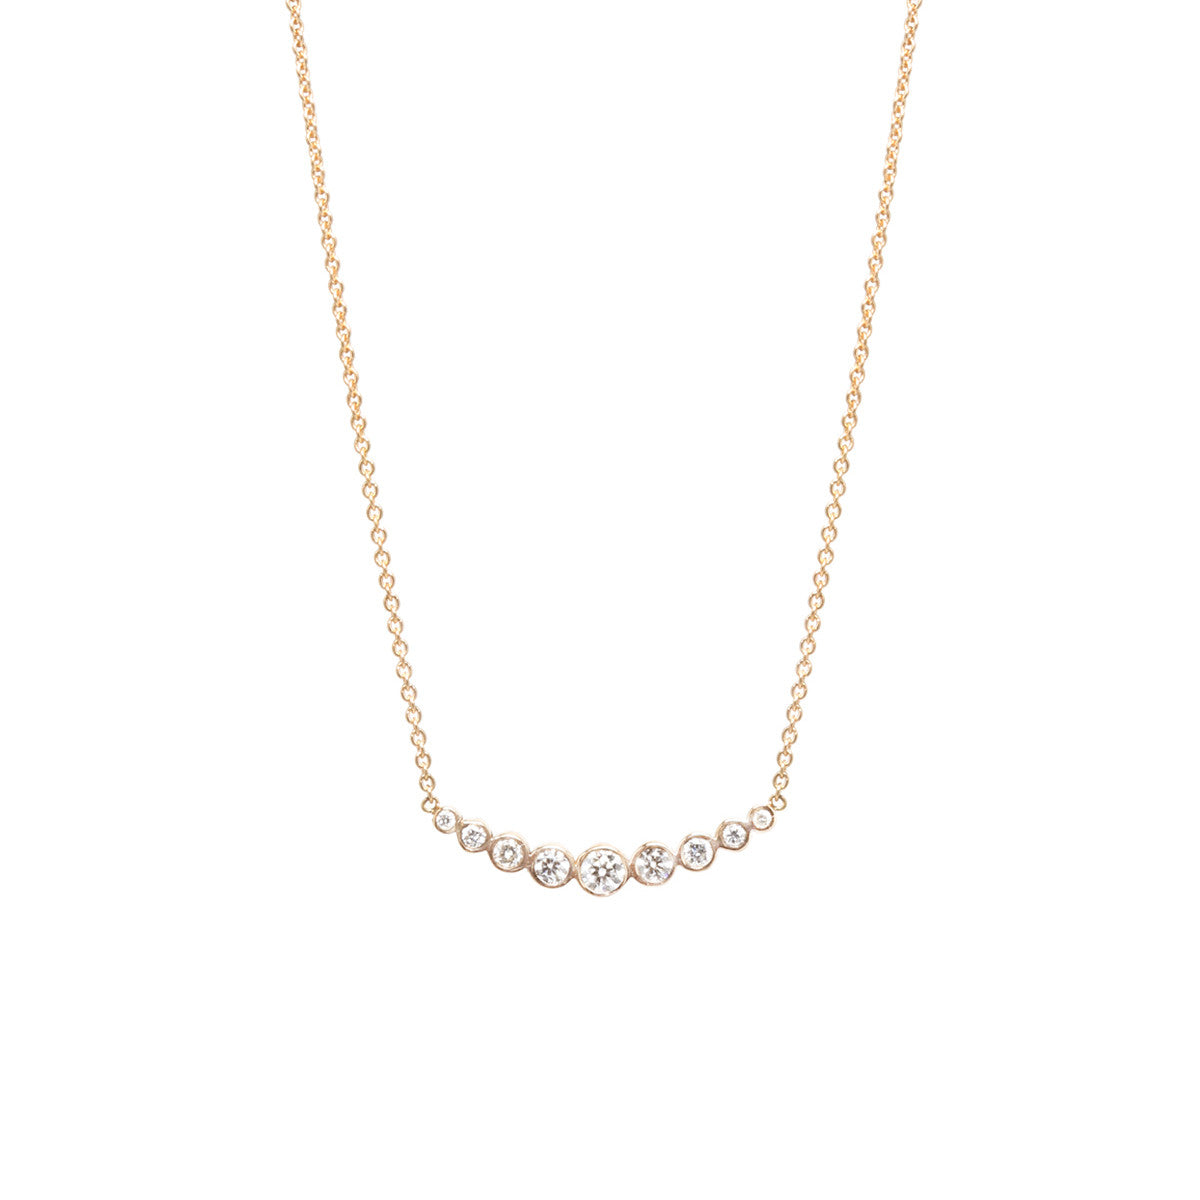 14k graduated curved bezel bar necklace